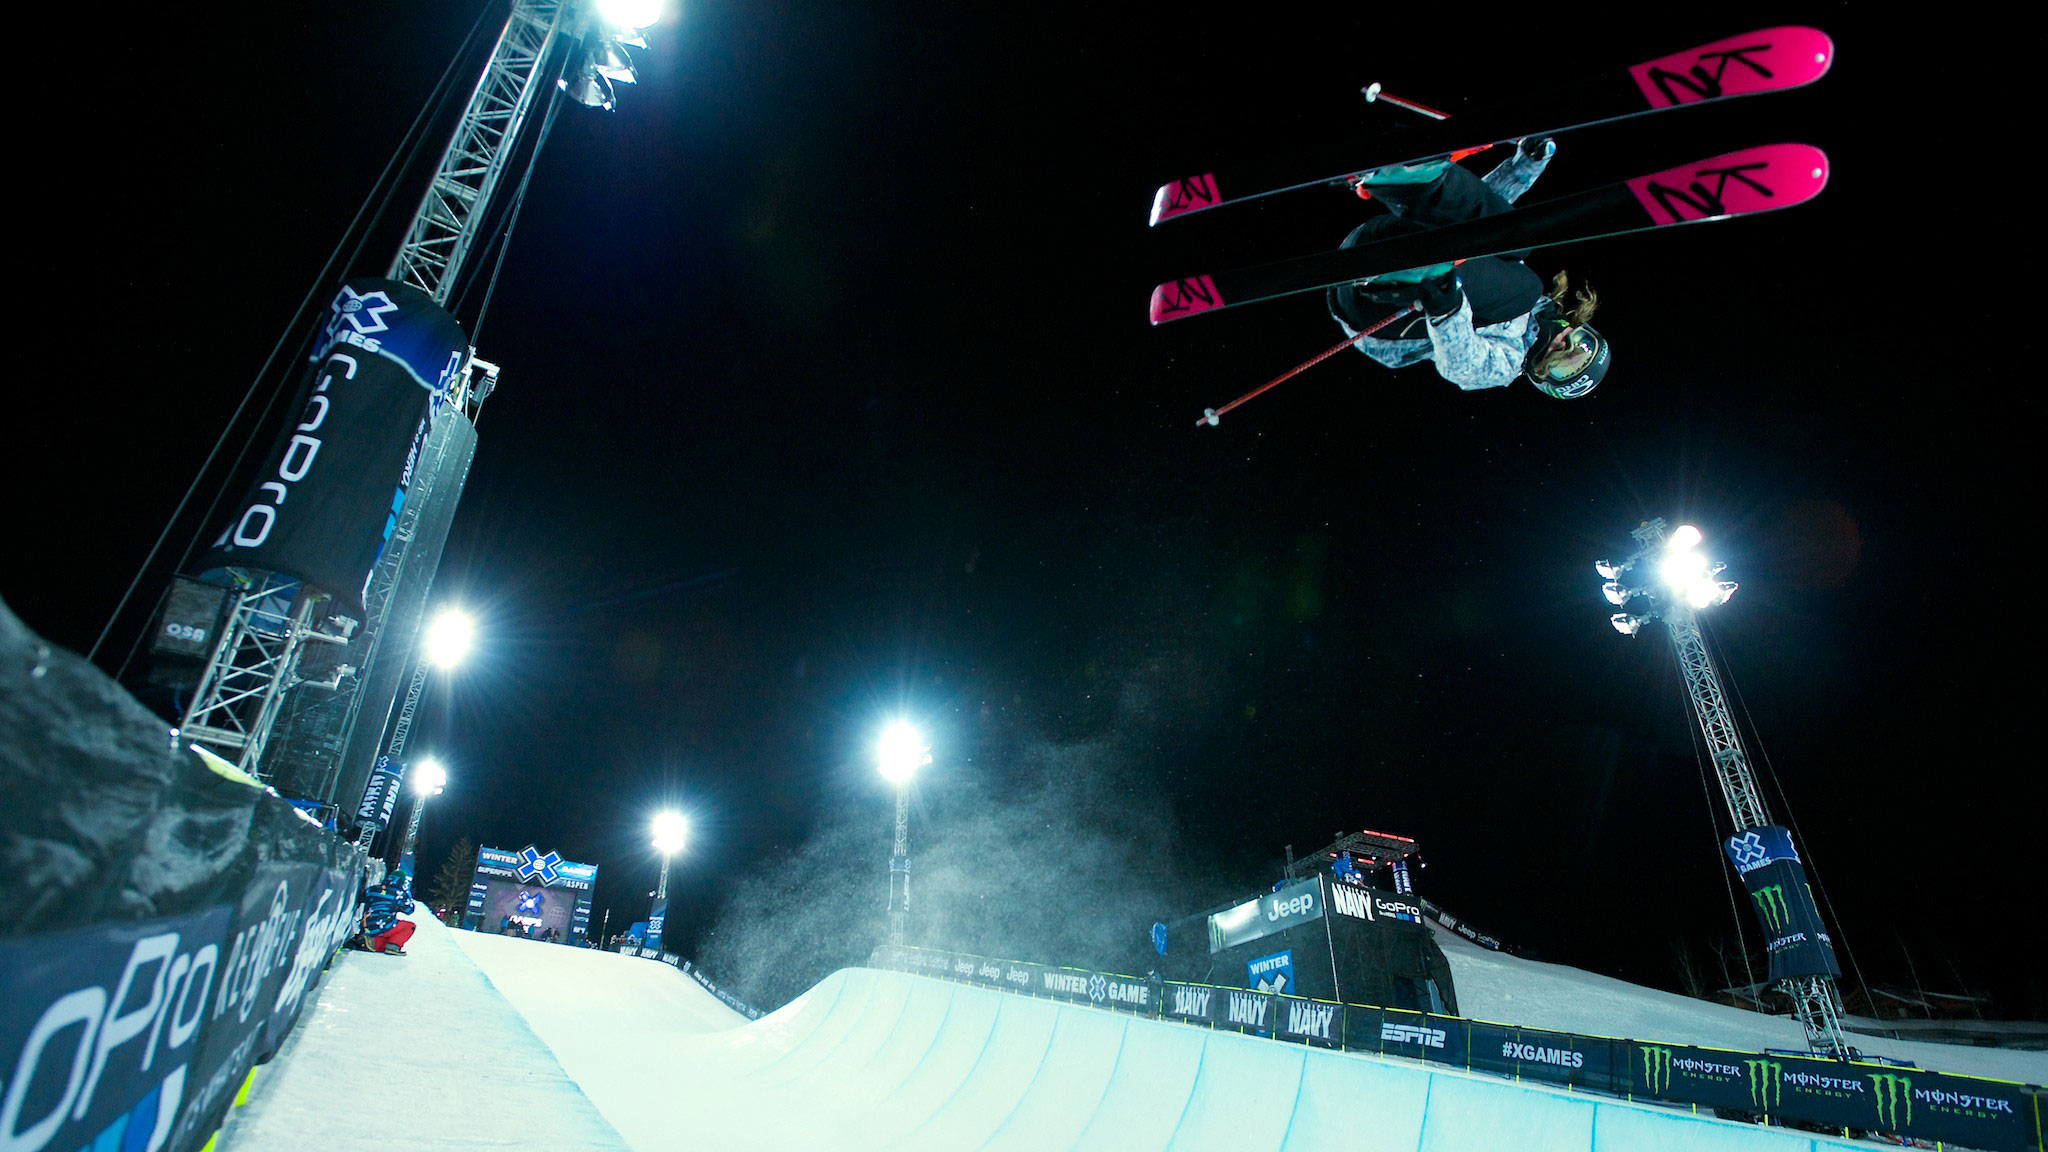 Brita Sigourney placed fifth in women's Ski SuperPipe at X Games Aspen 2014.